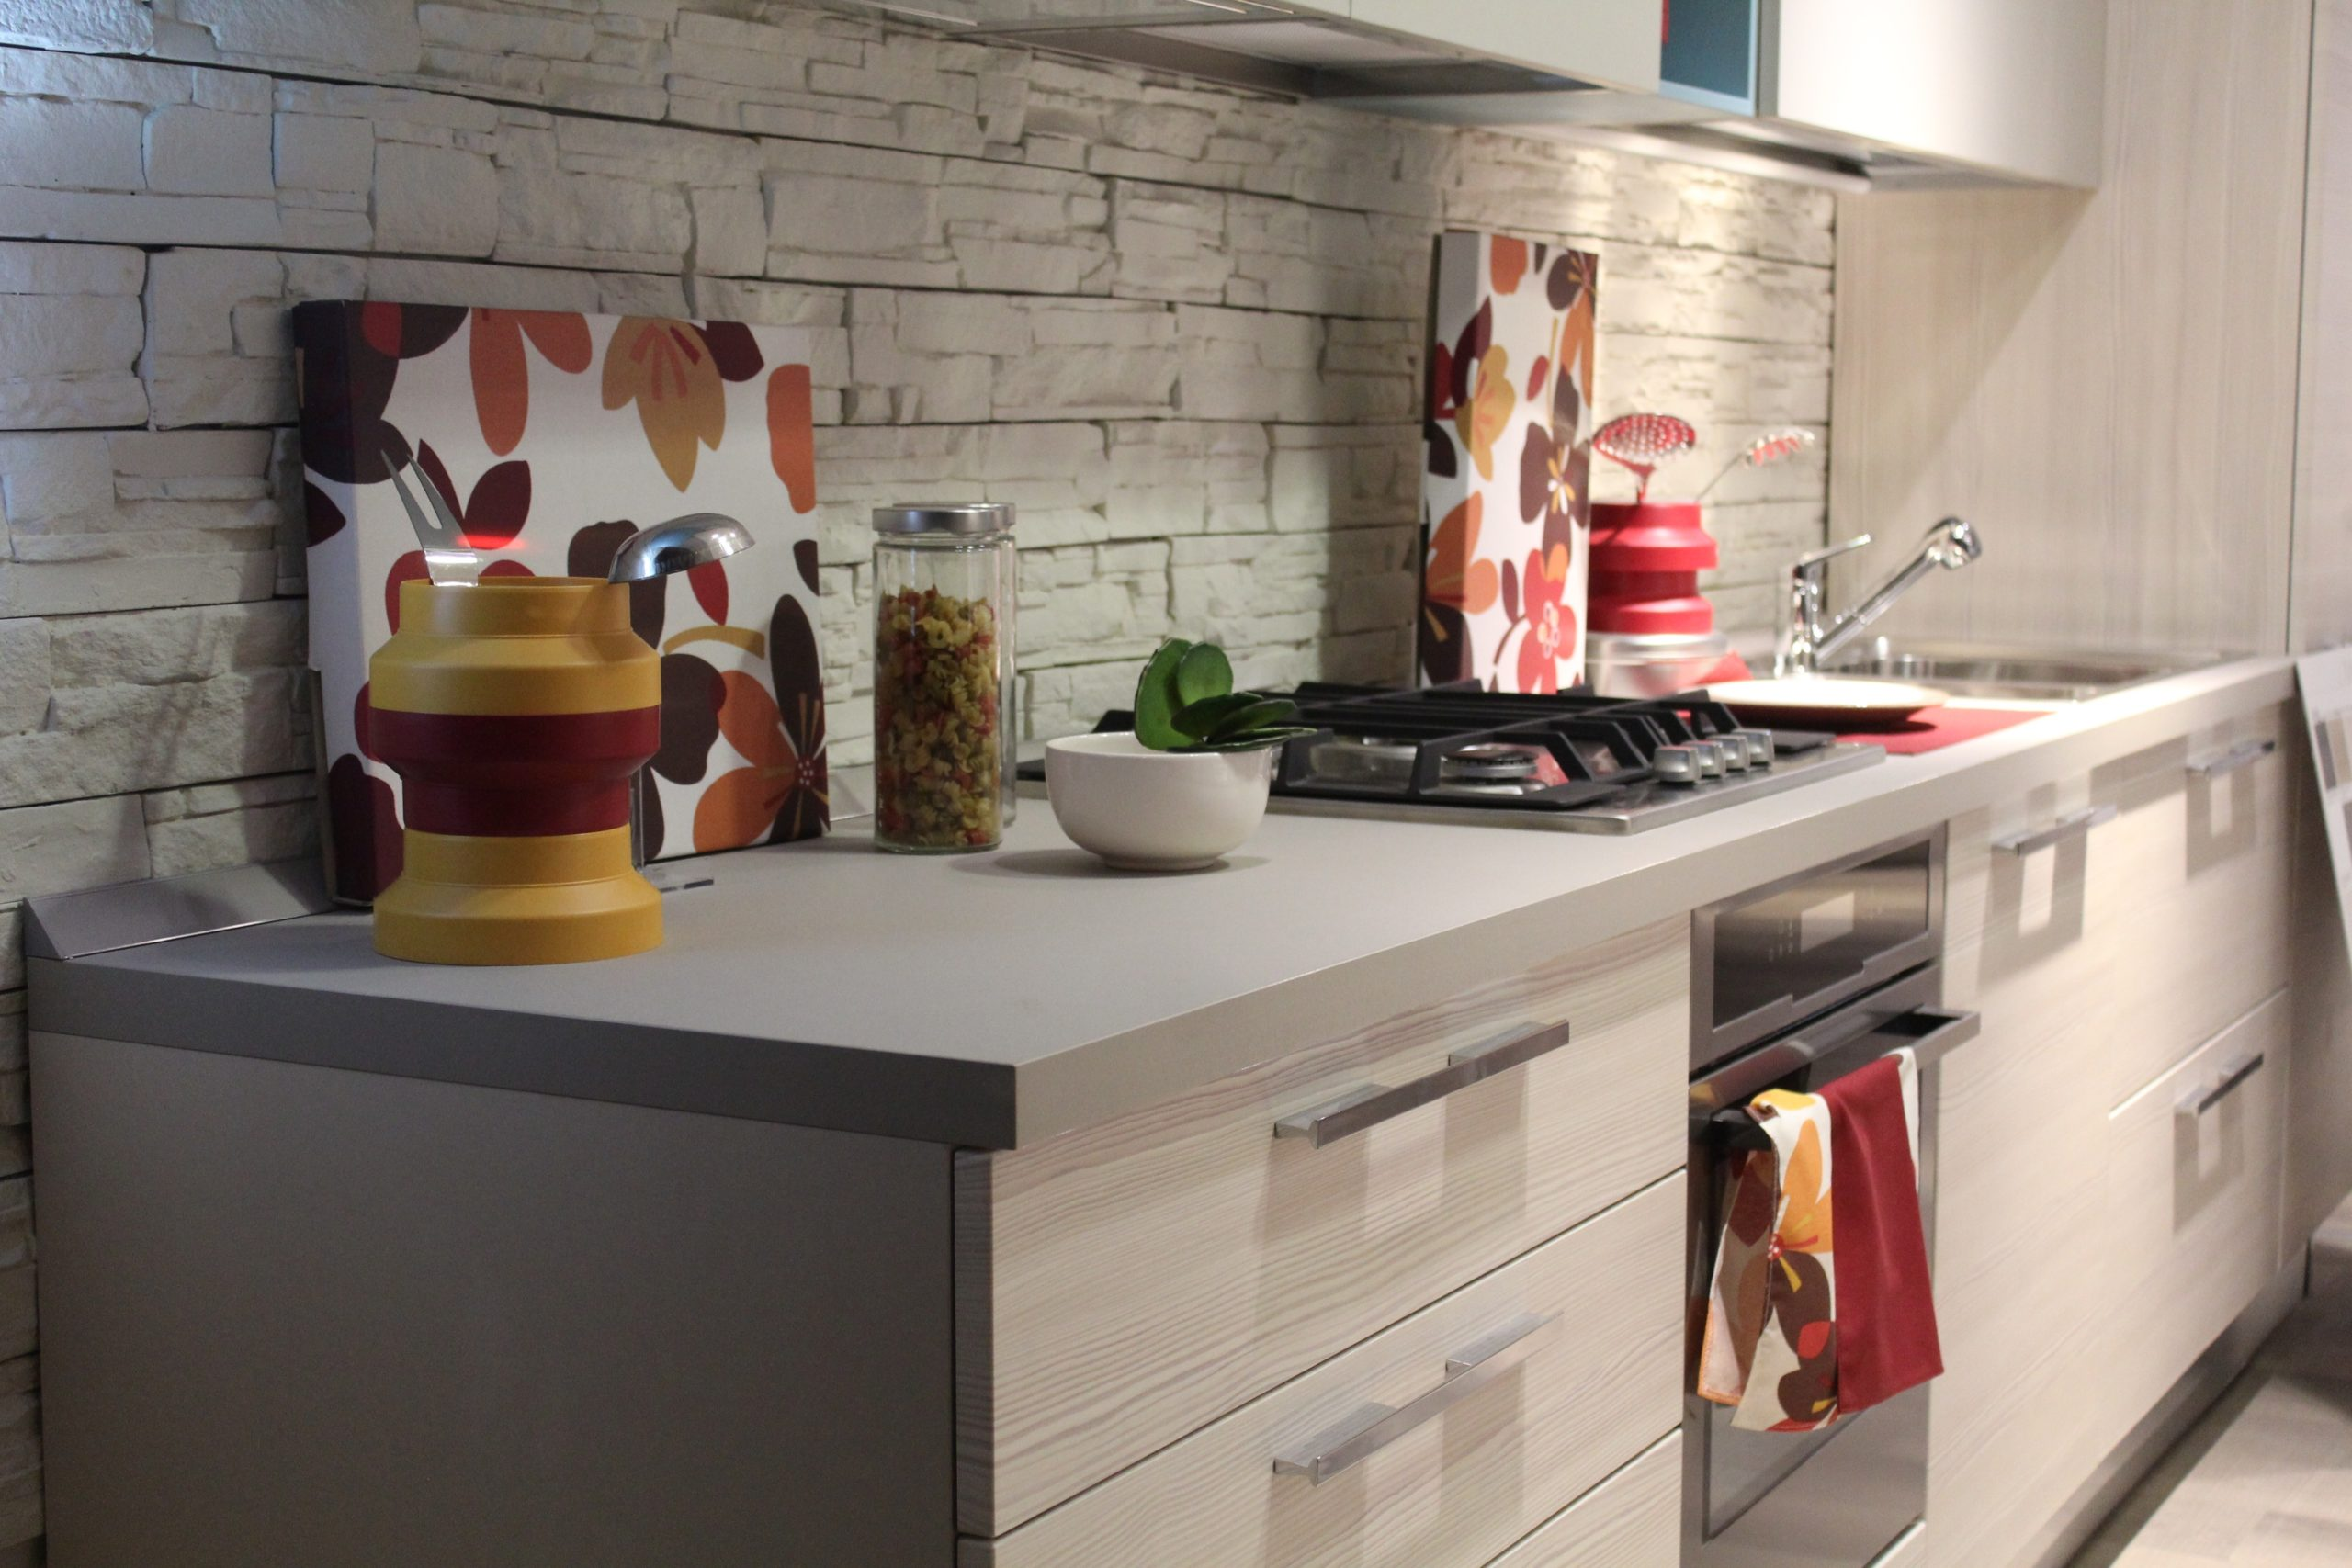 Incredible Tips For That New Polished Kitchen